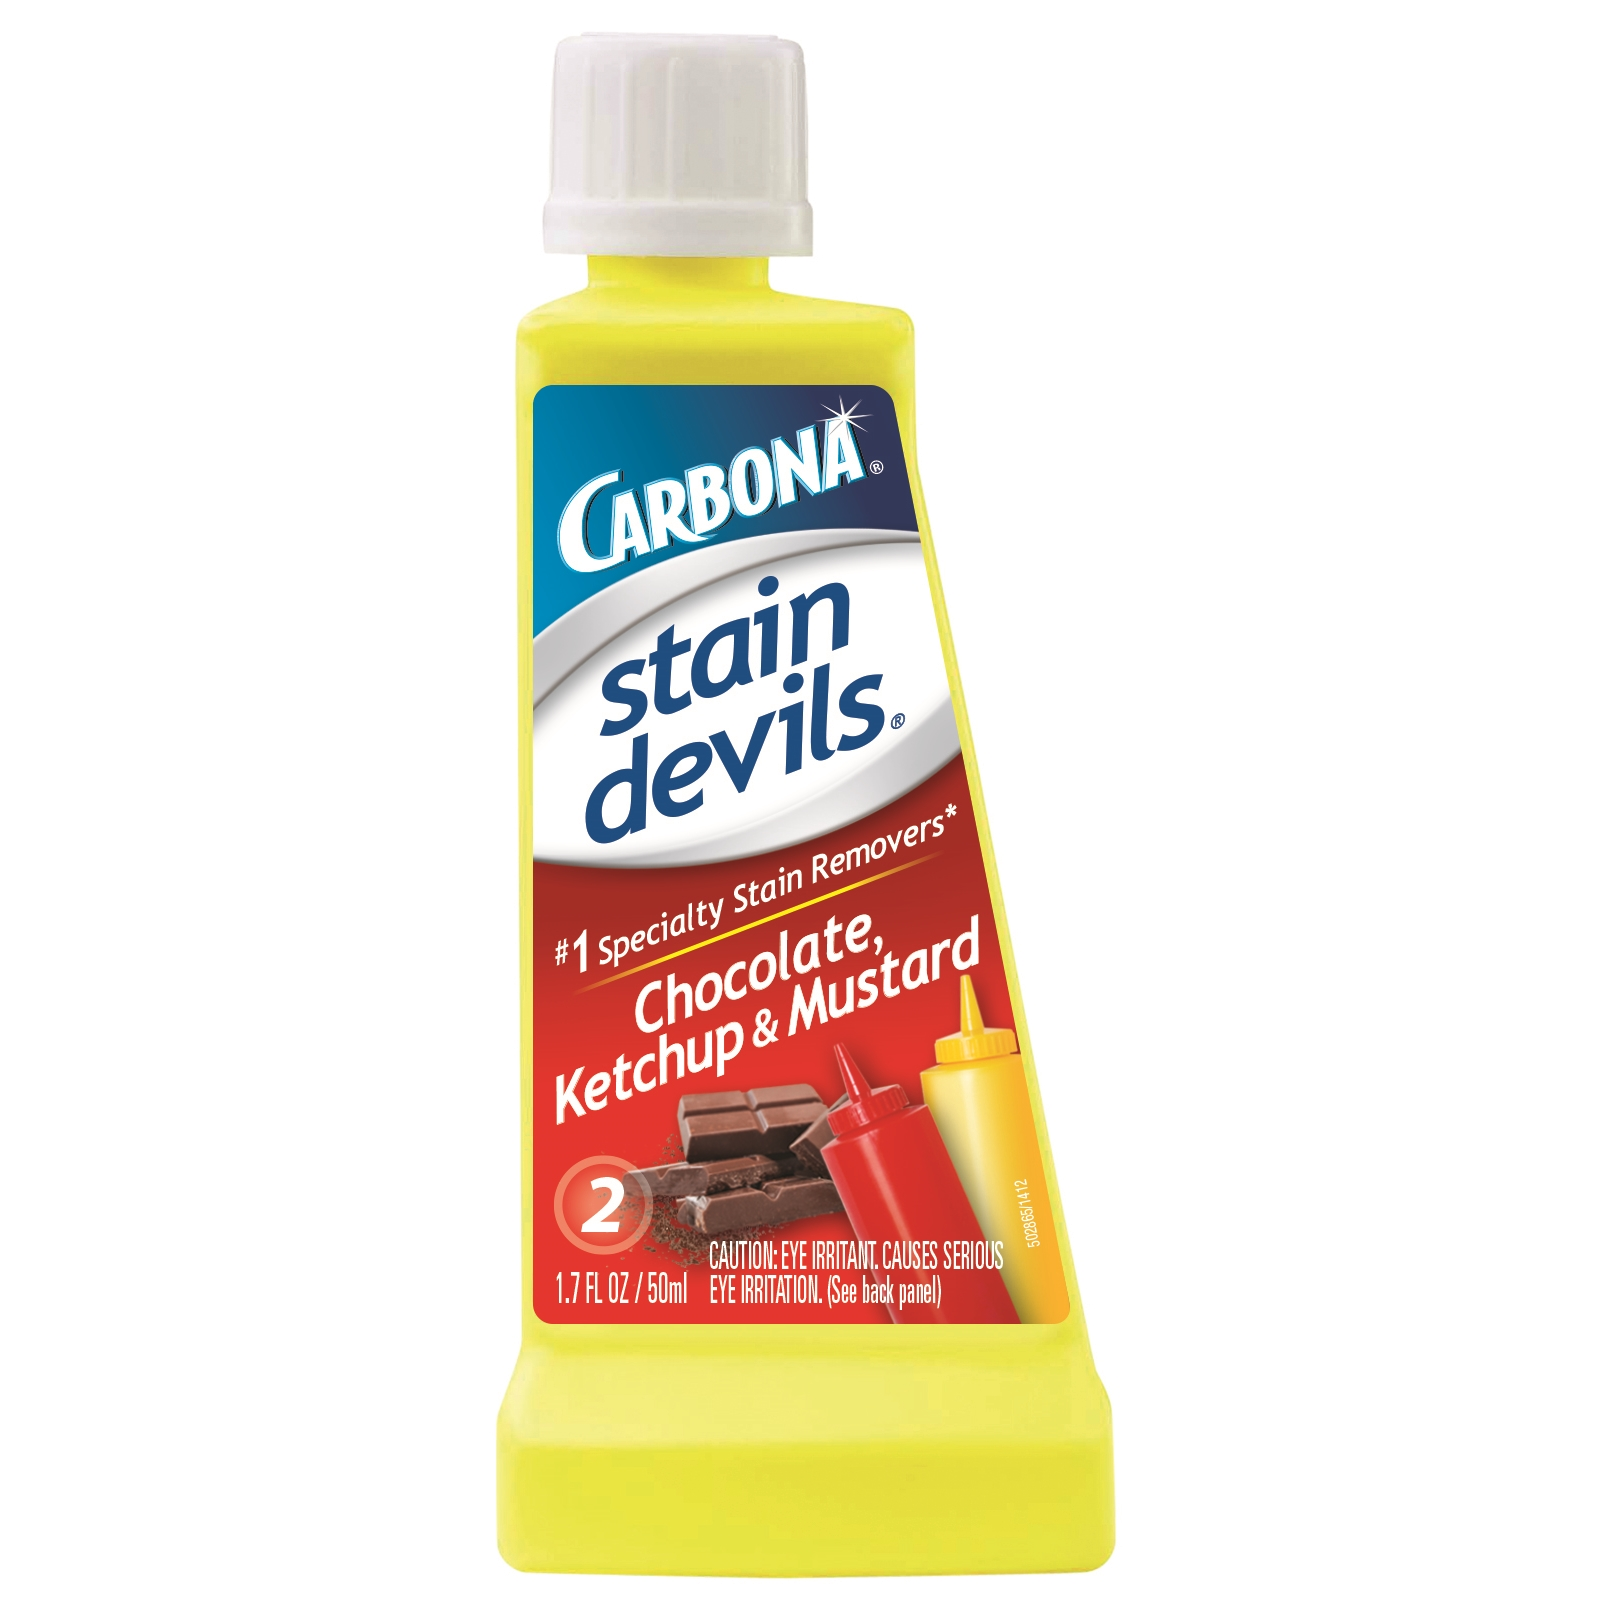 Carbona Stain Devils #2 - Ketchup, Mustard & Chocolate Stain Remover, Stain Remover, Laundry, 1.7 fl oz